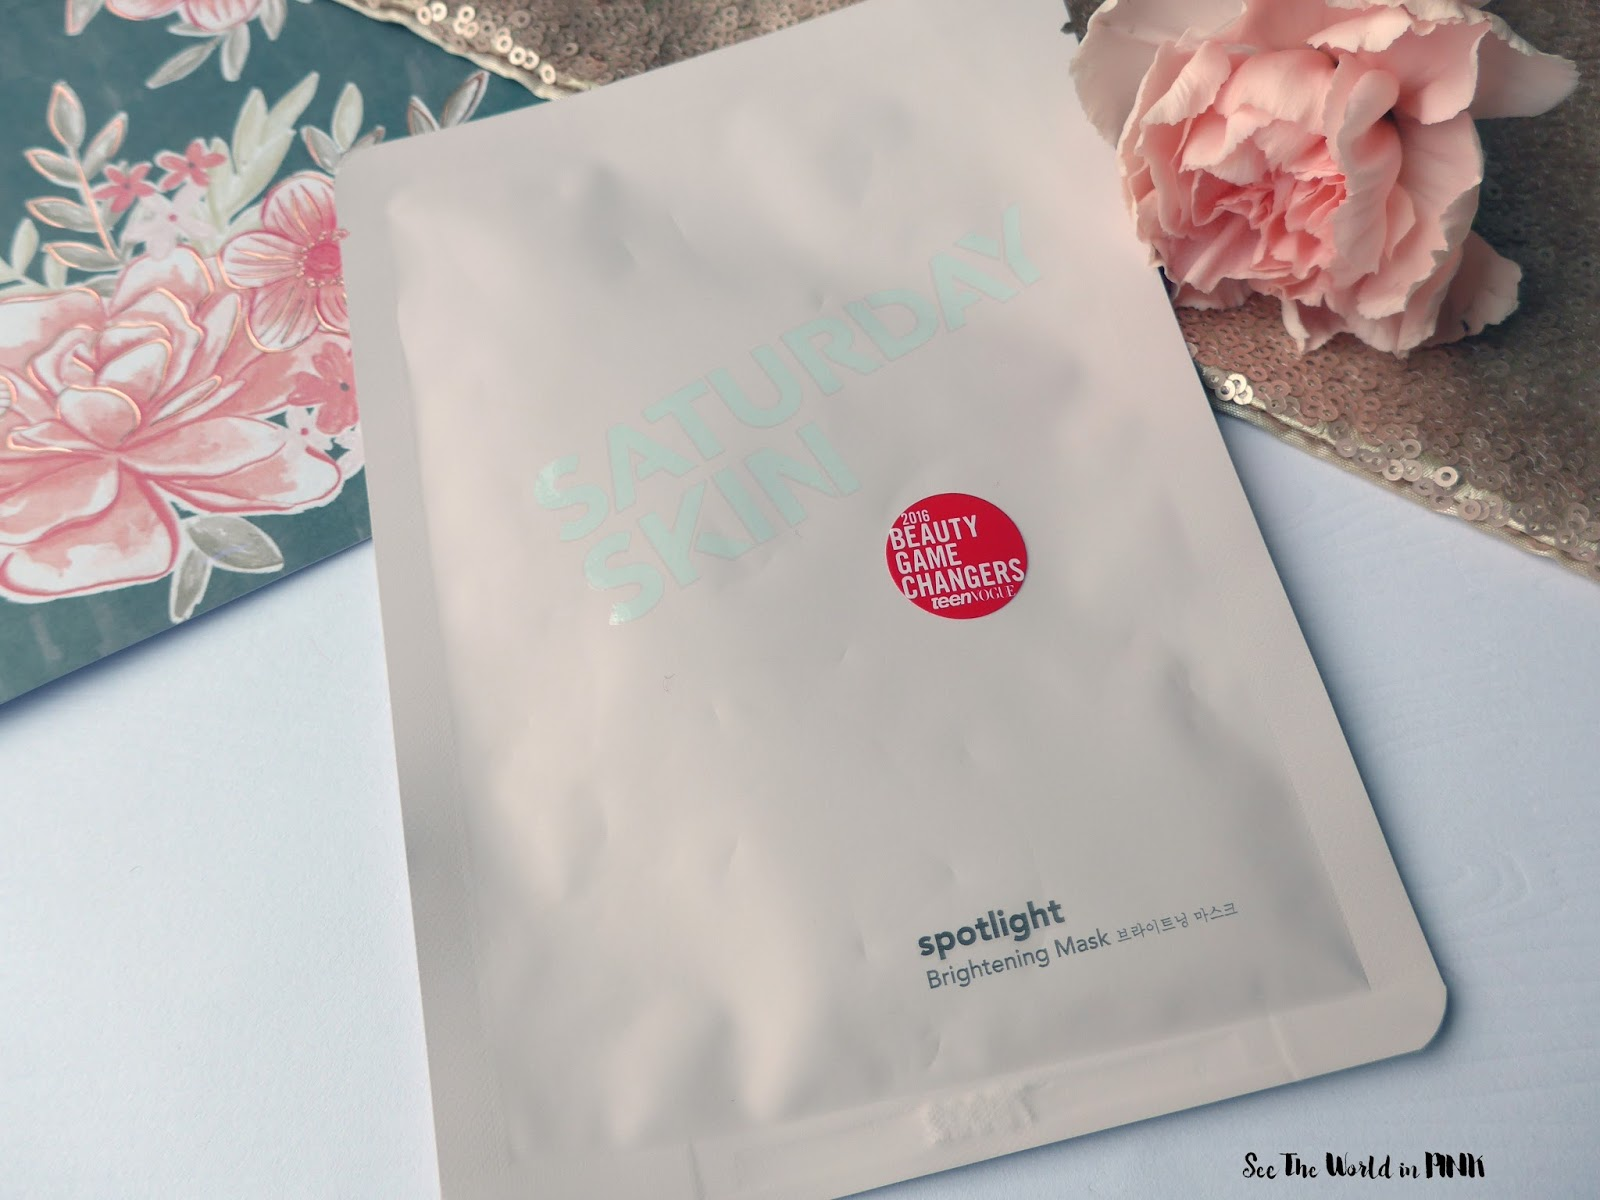 Mask Wednesday - Saturday Skin Spotlight Brightening Mask Try-on and Review!